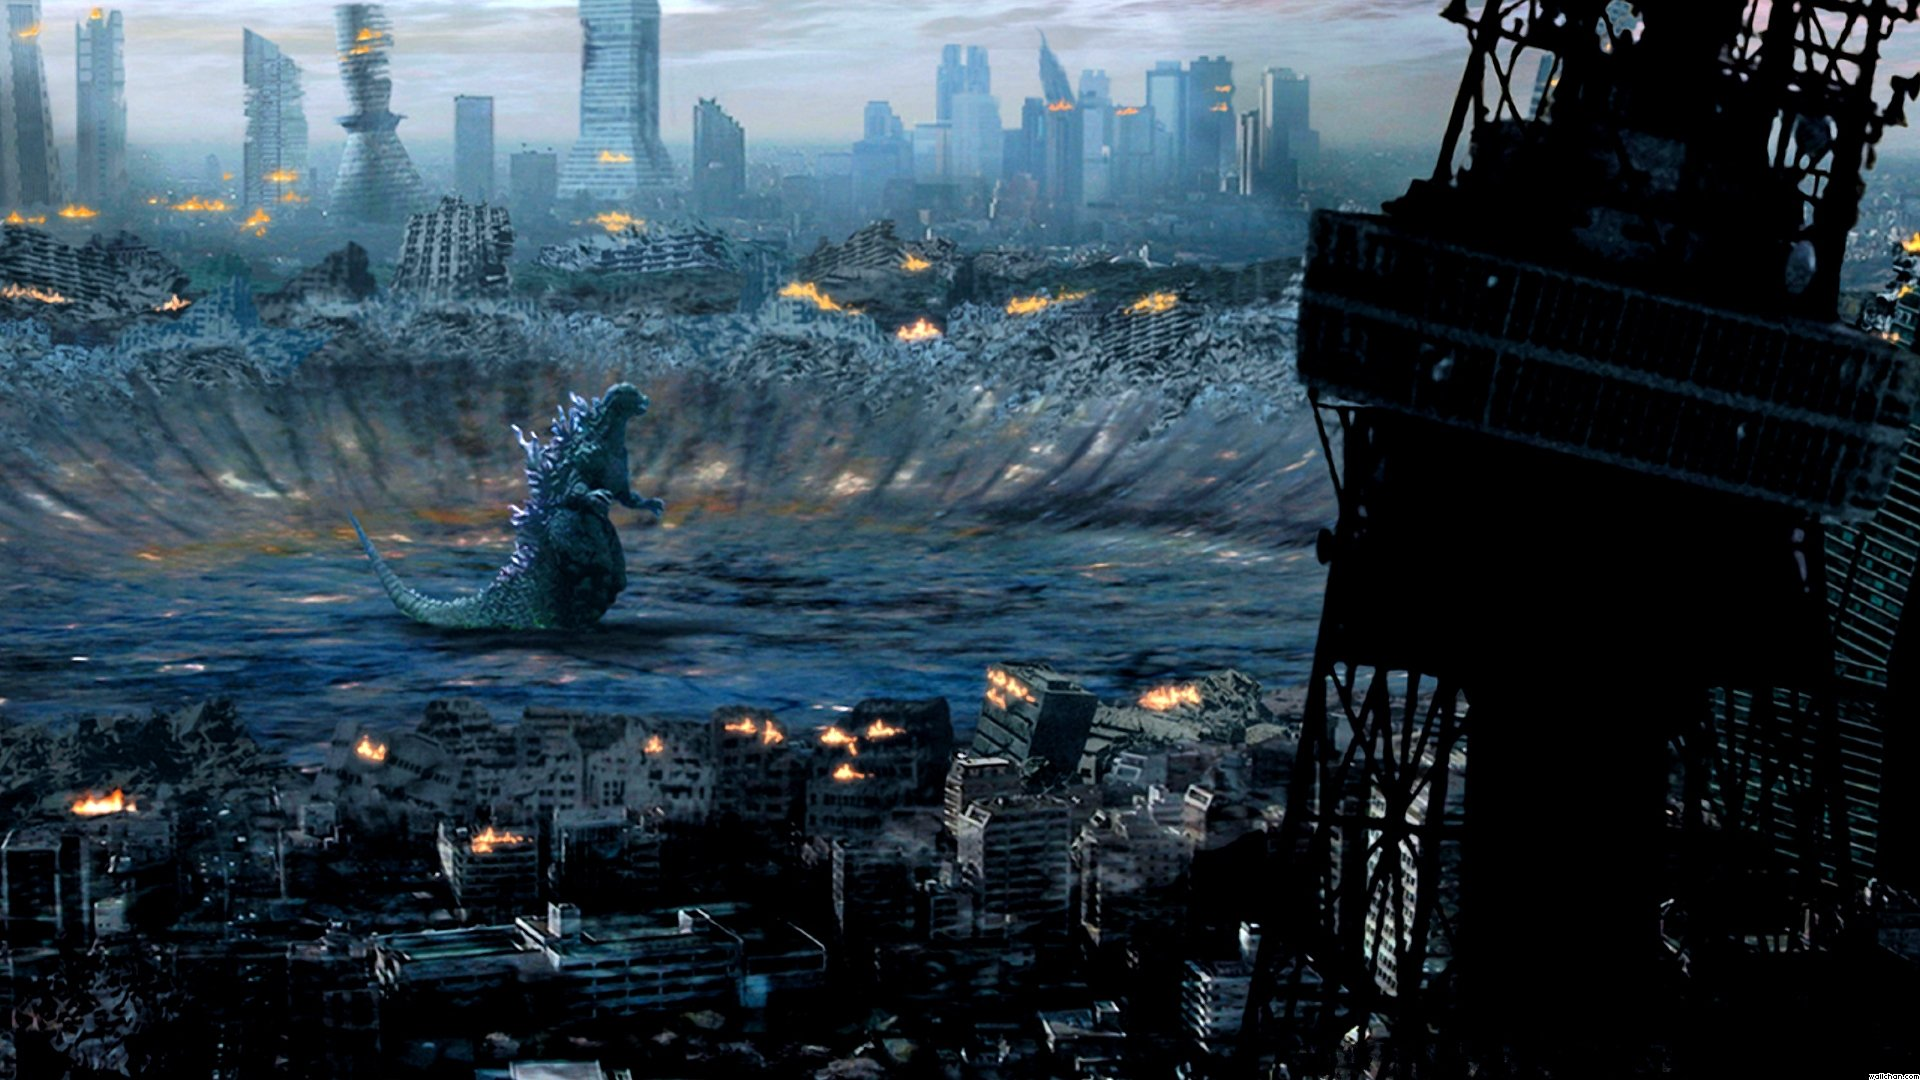 Godzilla Computer Wallpapers Desktop Backgrounds 1920x1080